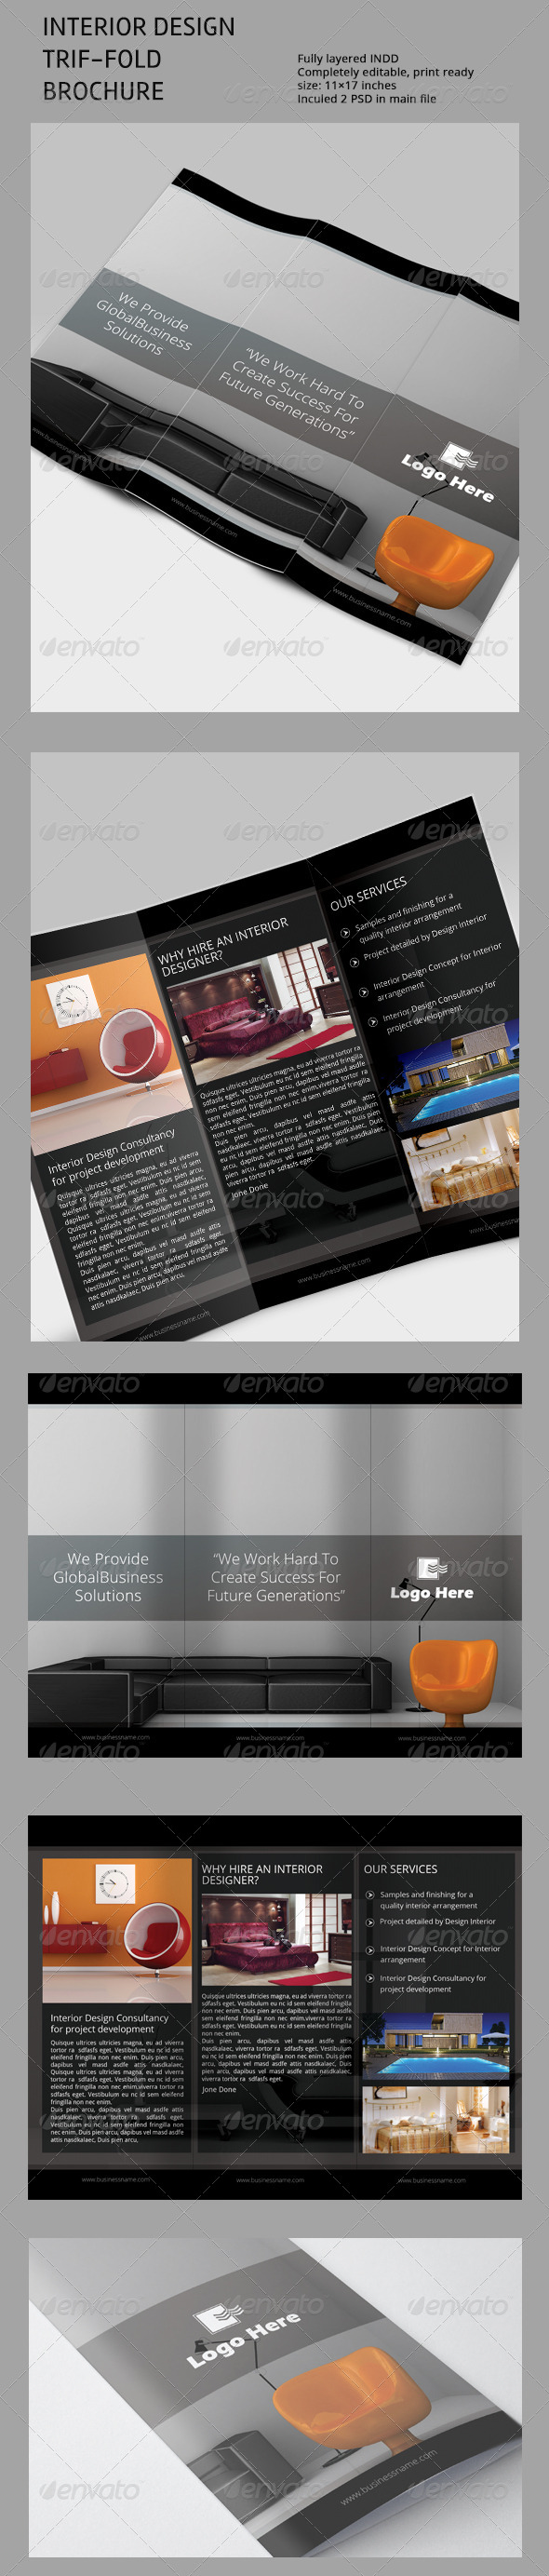 Interior Design Tri-Fold Brchoure Template - Corporate Brochures